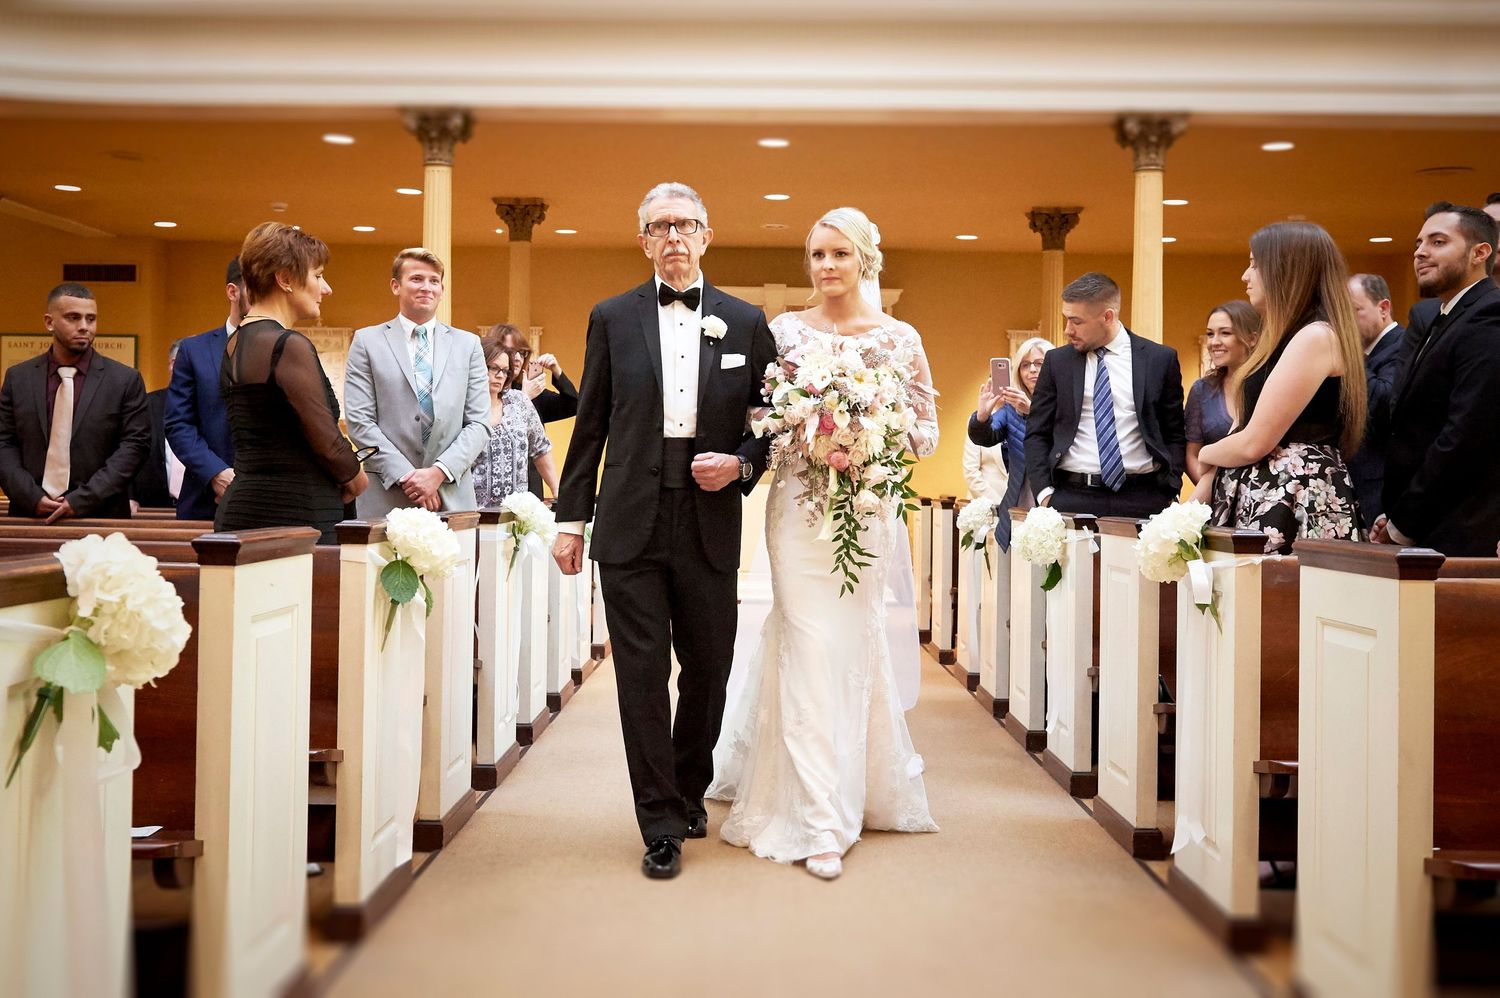 bride and father walking down the isle at Old St. Joseph's church in Philadelphia wedding photo wedding photo